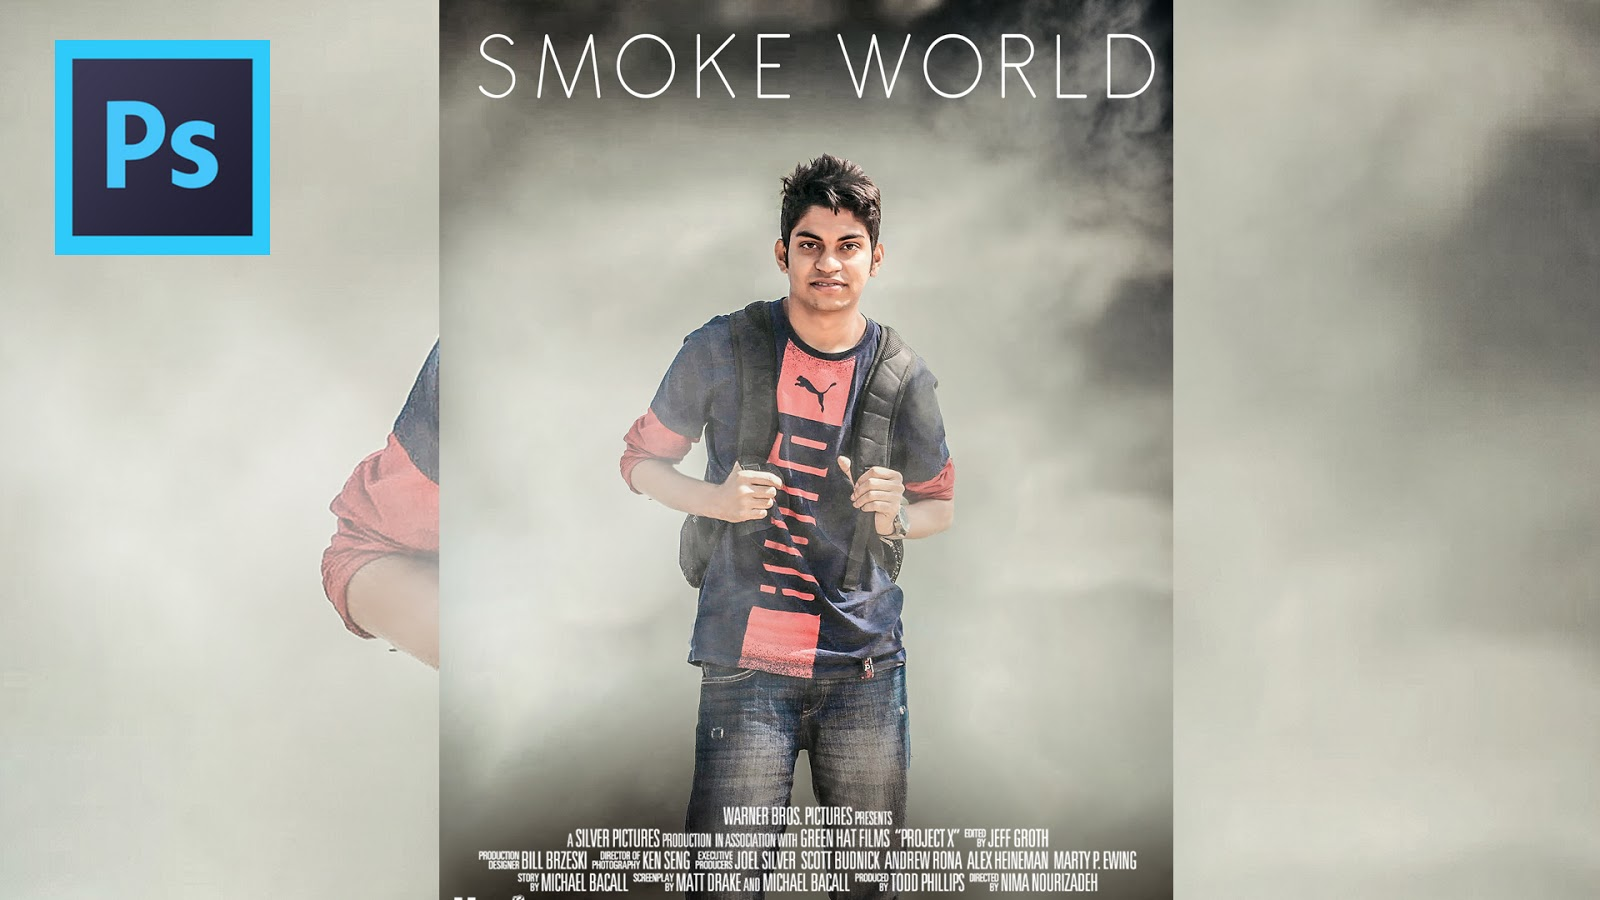 Photoshop tutorial how to create smoky effects movie poster in photoshop tutorial how to create smoky effects movie poster in photoshop baditri Gallery